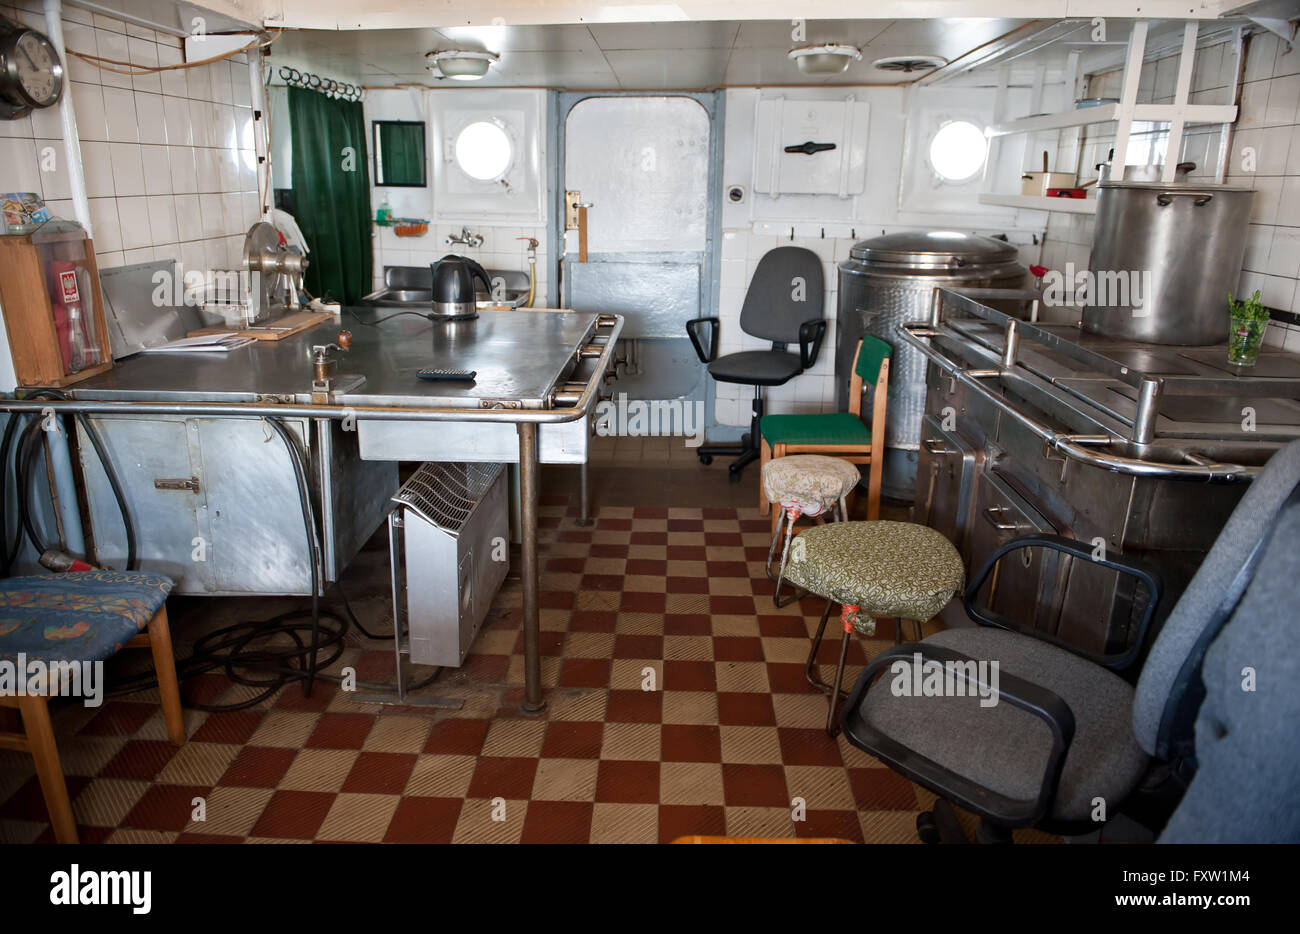 Galley Cabin In Dar Pomorza Ship Kitchen Room Interior At